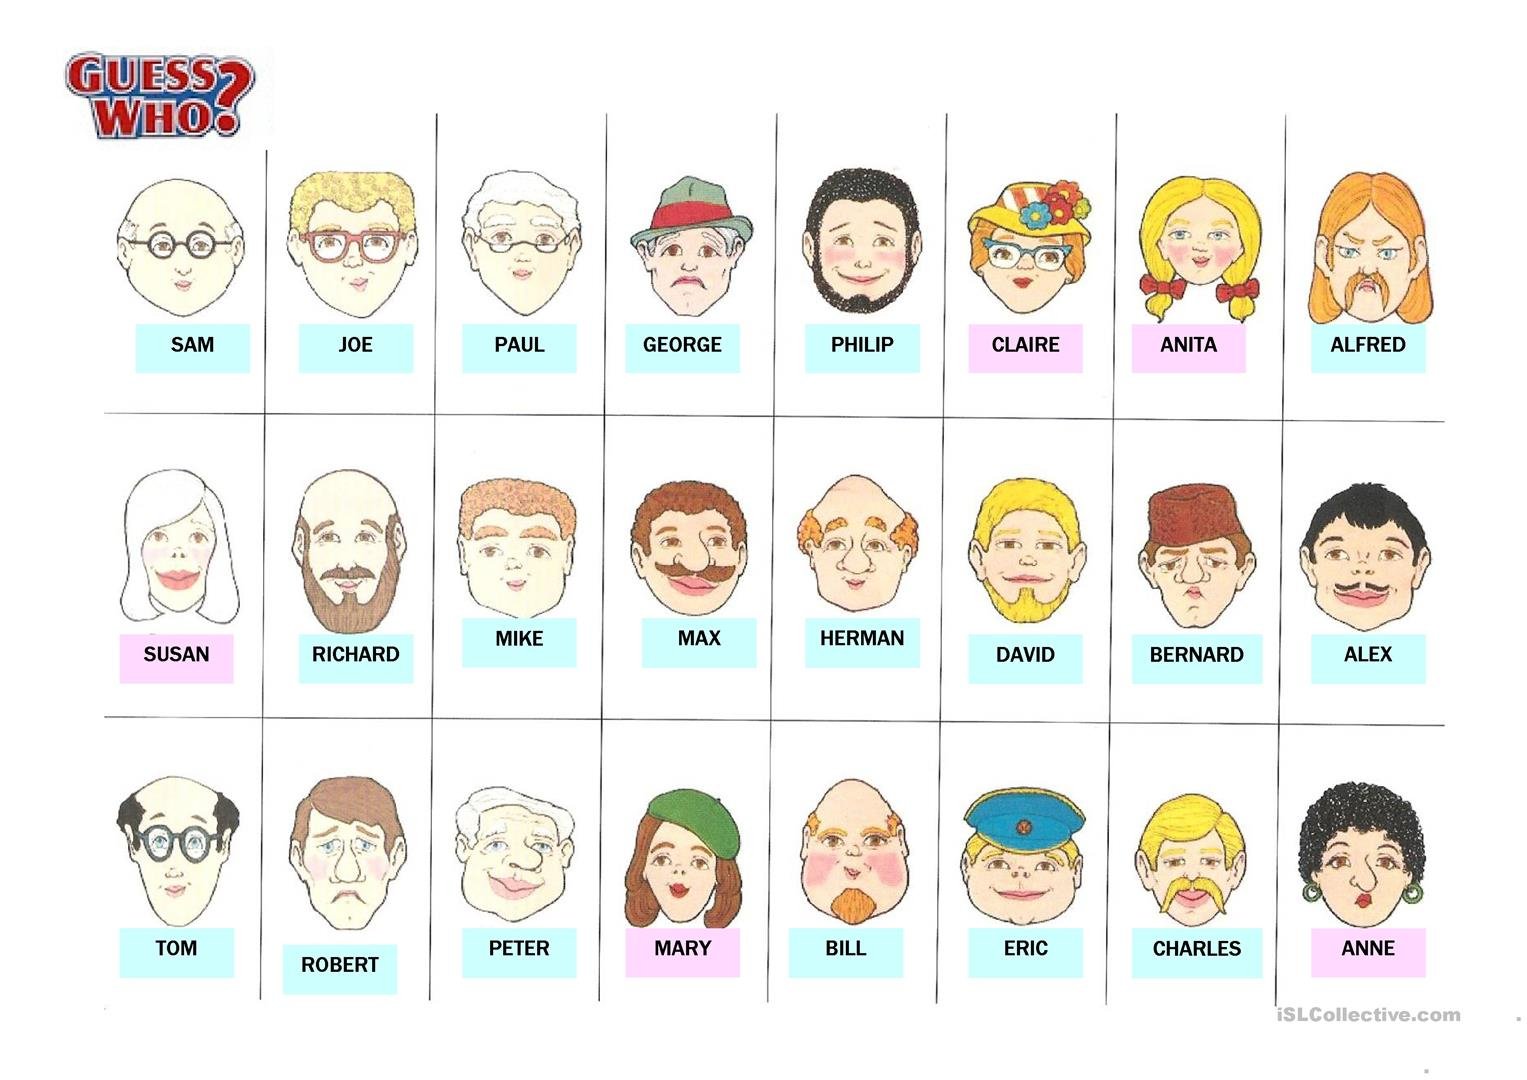 Guess Who Worksheet - Free Esl Printable Worksheets Madeteachers | Guess Who Printable Worksheets